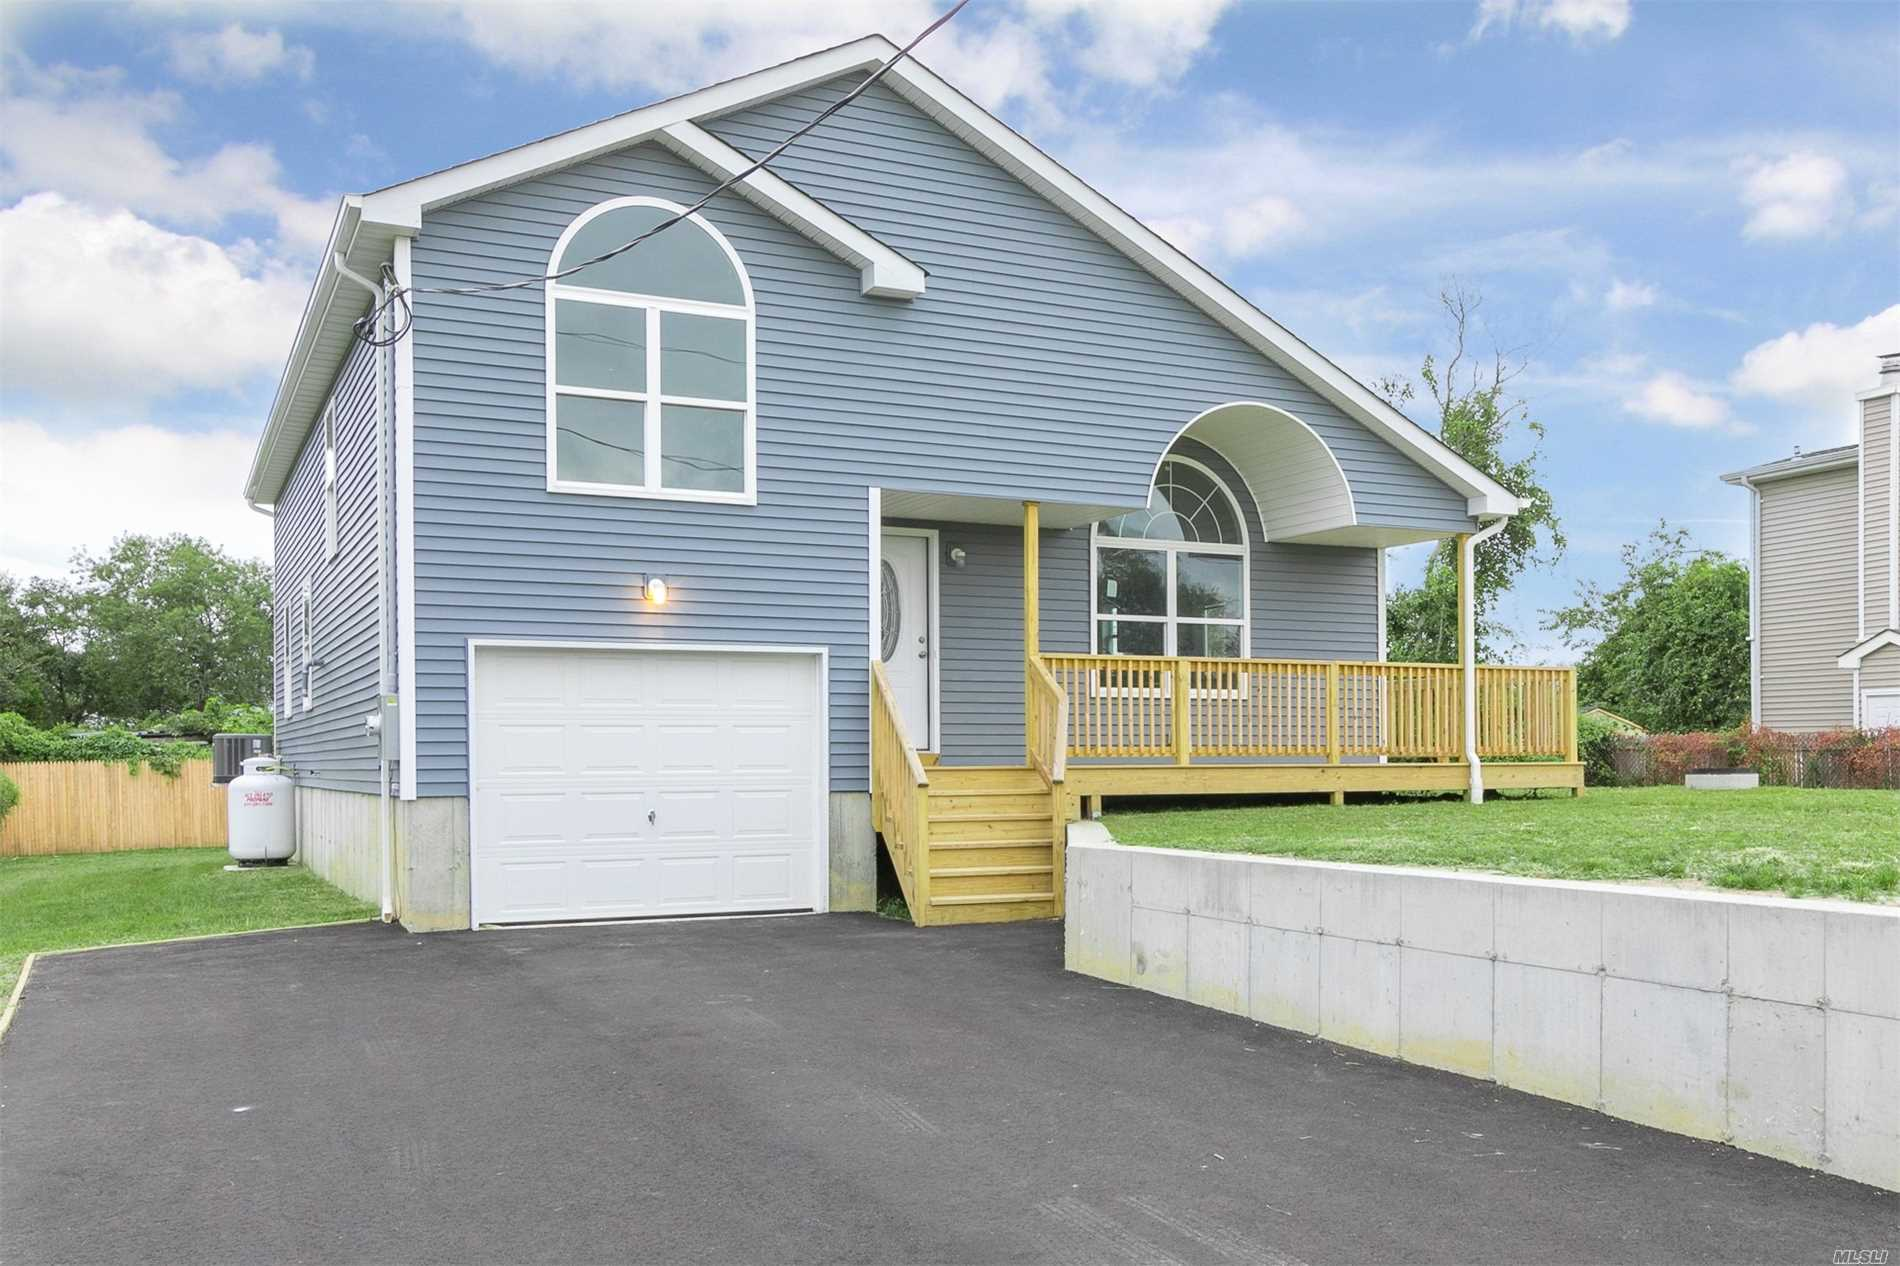 Spectacular Contemporary Style Home- You'll Noice The Wraparound Deck That Leads To The Master Suite. Open Concept Home. Beautiful Loft That Overlooks The Main Floor. Hard Wood Floors, Cac. Many Upgrades In This New Home. Must See.